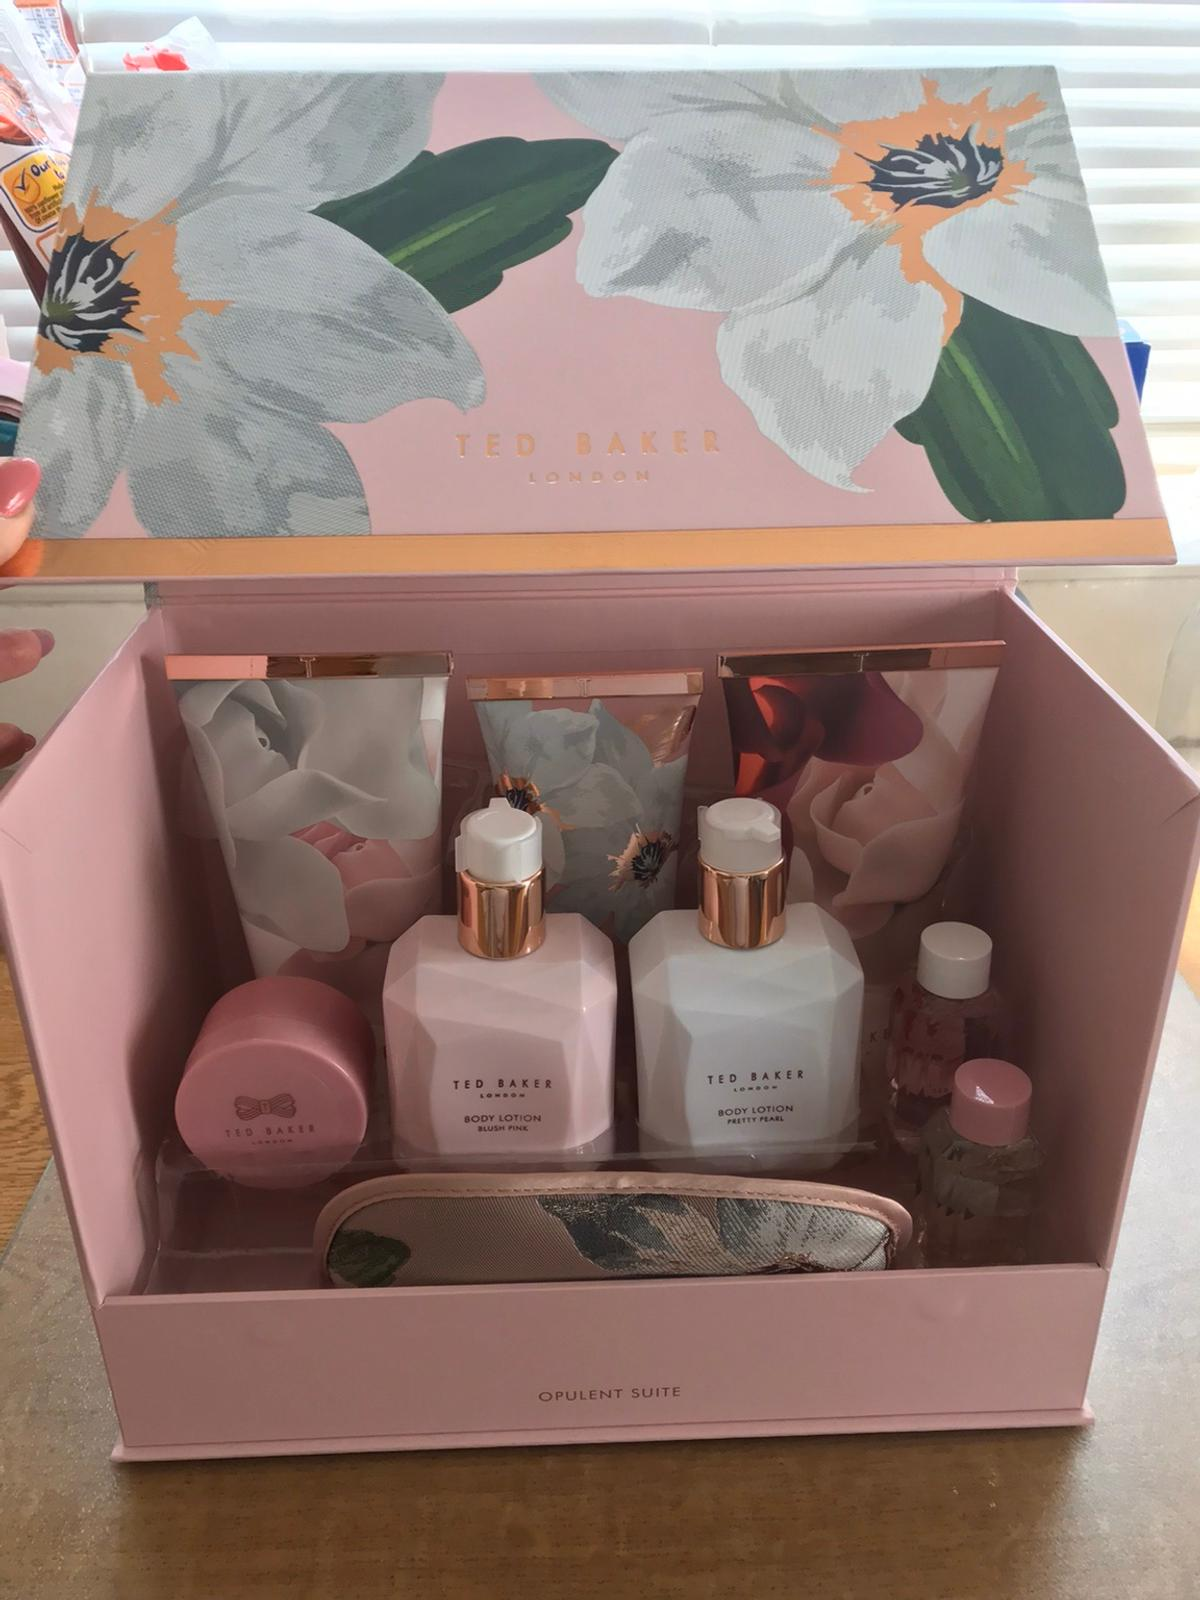 Ted baker set Items never been opened  Collection only